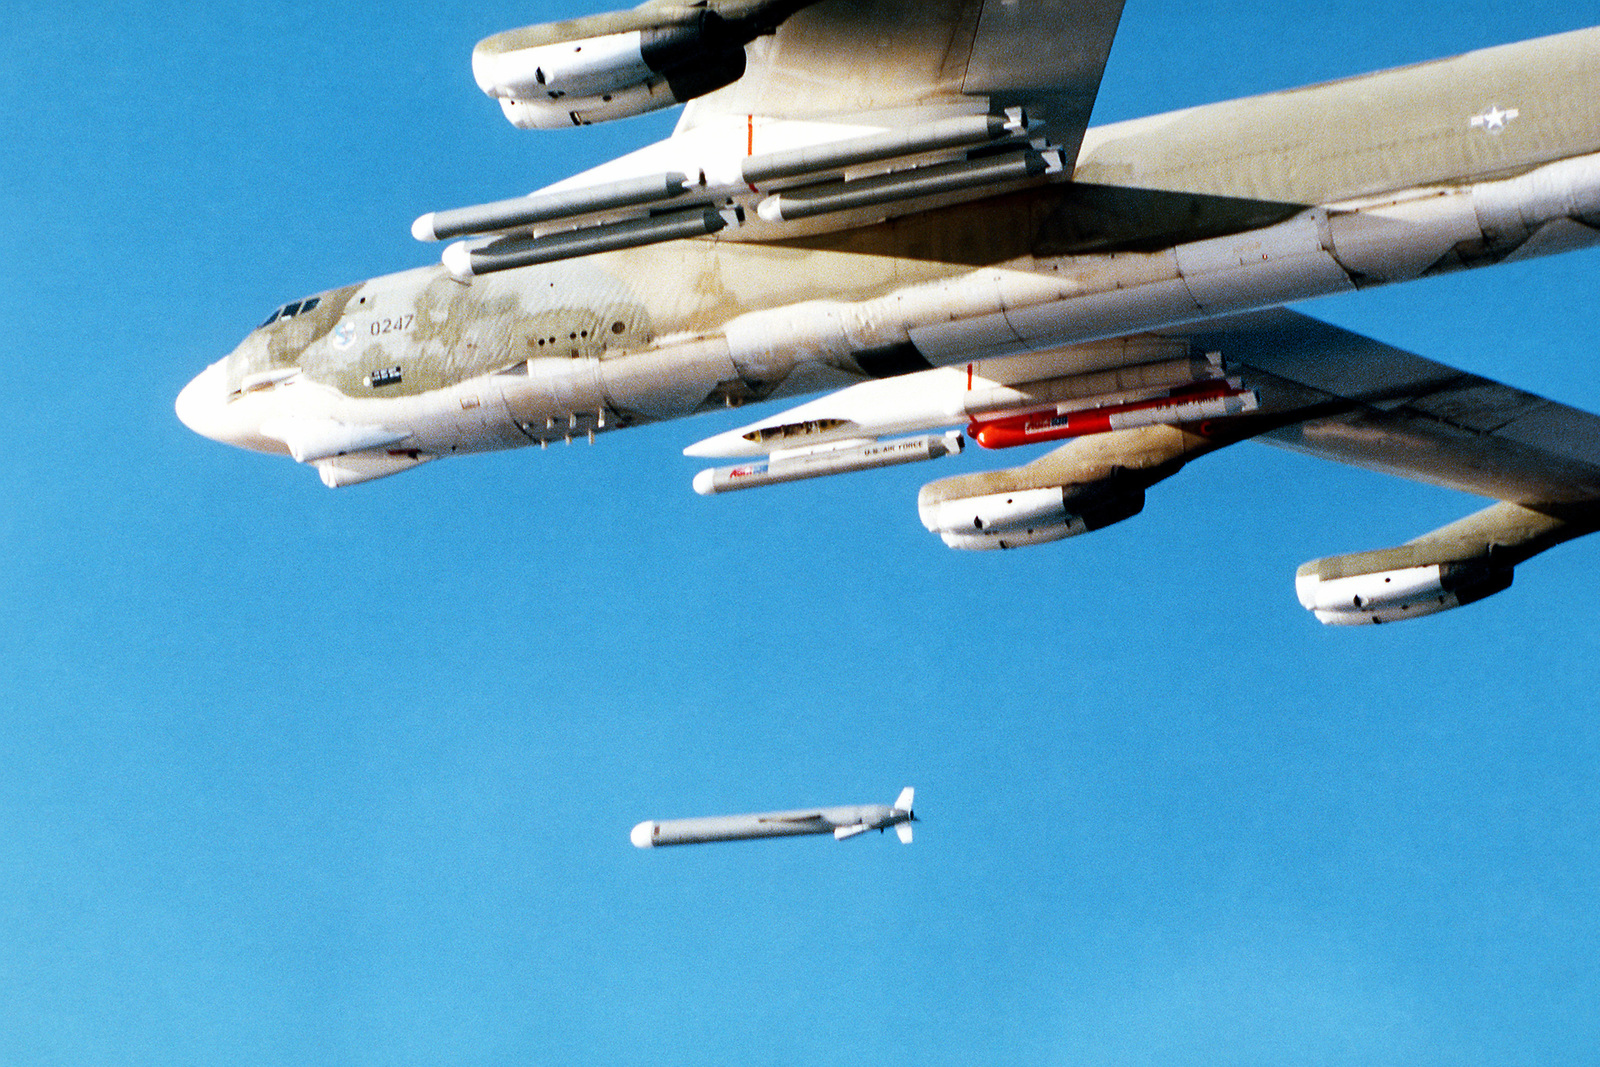 A left side view of a B-52 Stratofortress aircraft releasing an AGM-109 Tomahawk air-launched cruise missile